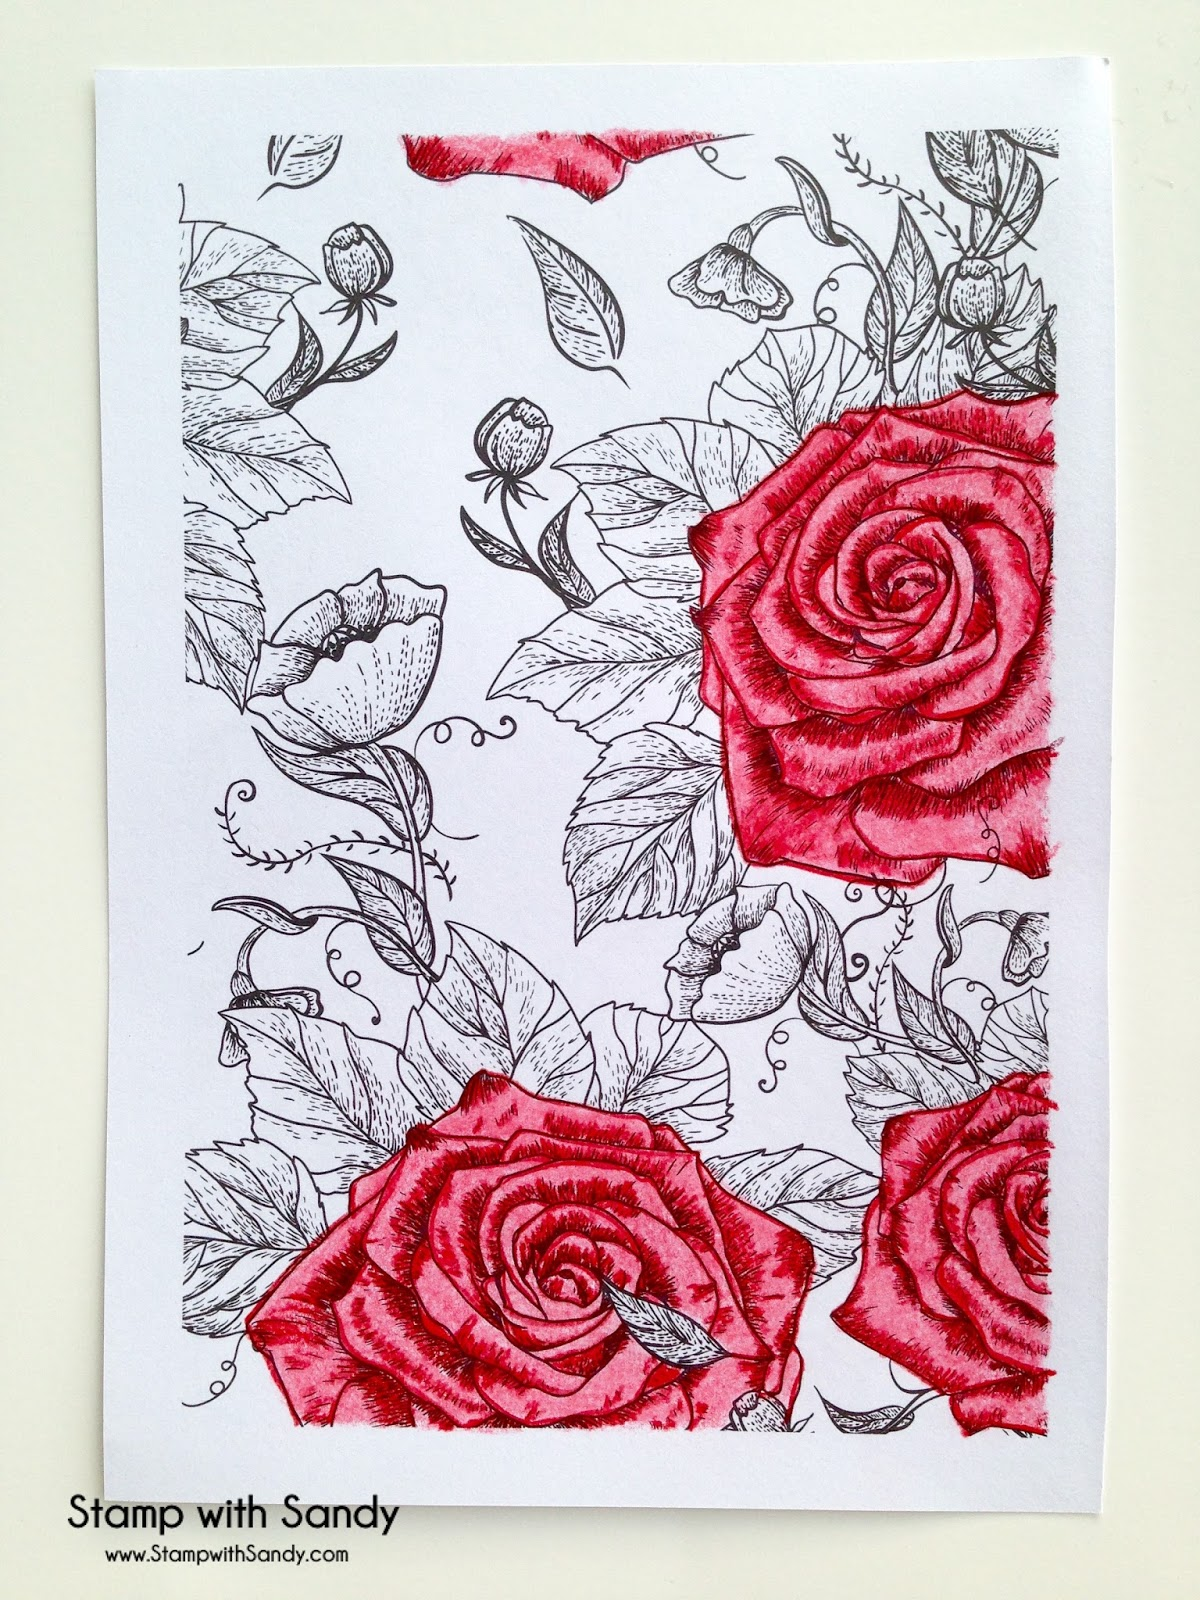 Stamp with Sandy: Adult Coloring Books